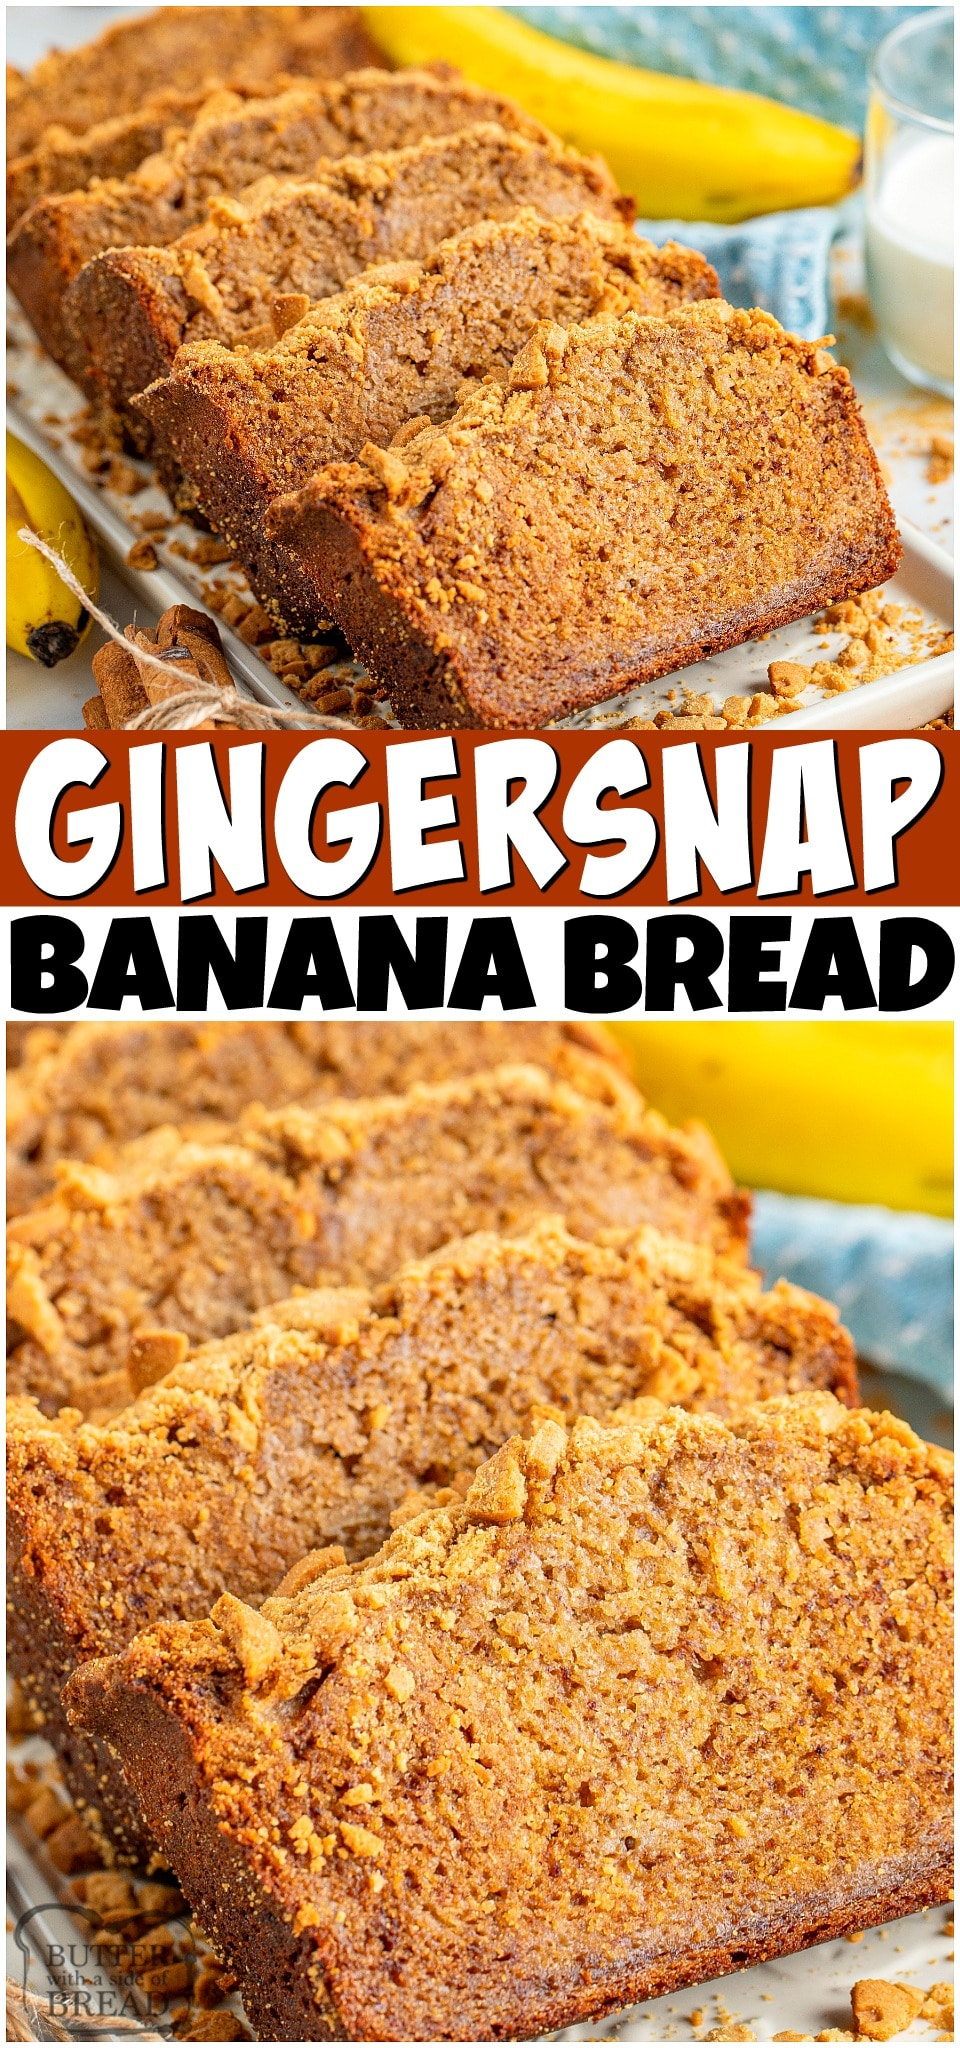 Gingersnap Banana Bread is a spiced banana bread recipe topped with crushed gingersnap cookies! The flavors meld into perfection in this incredible banana quick bread. #banana #bananabread #bread #quickbread #Gingersnap #easyrecipe from BUTTER WITH A SIDE OF BREAD